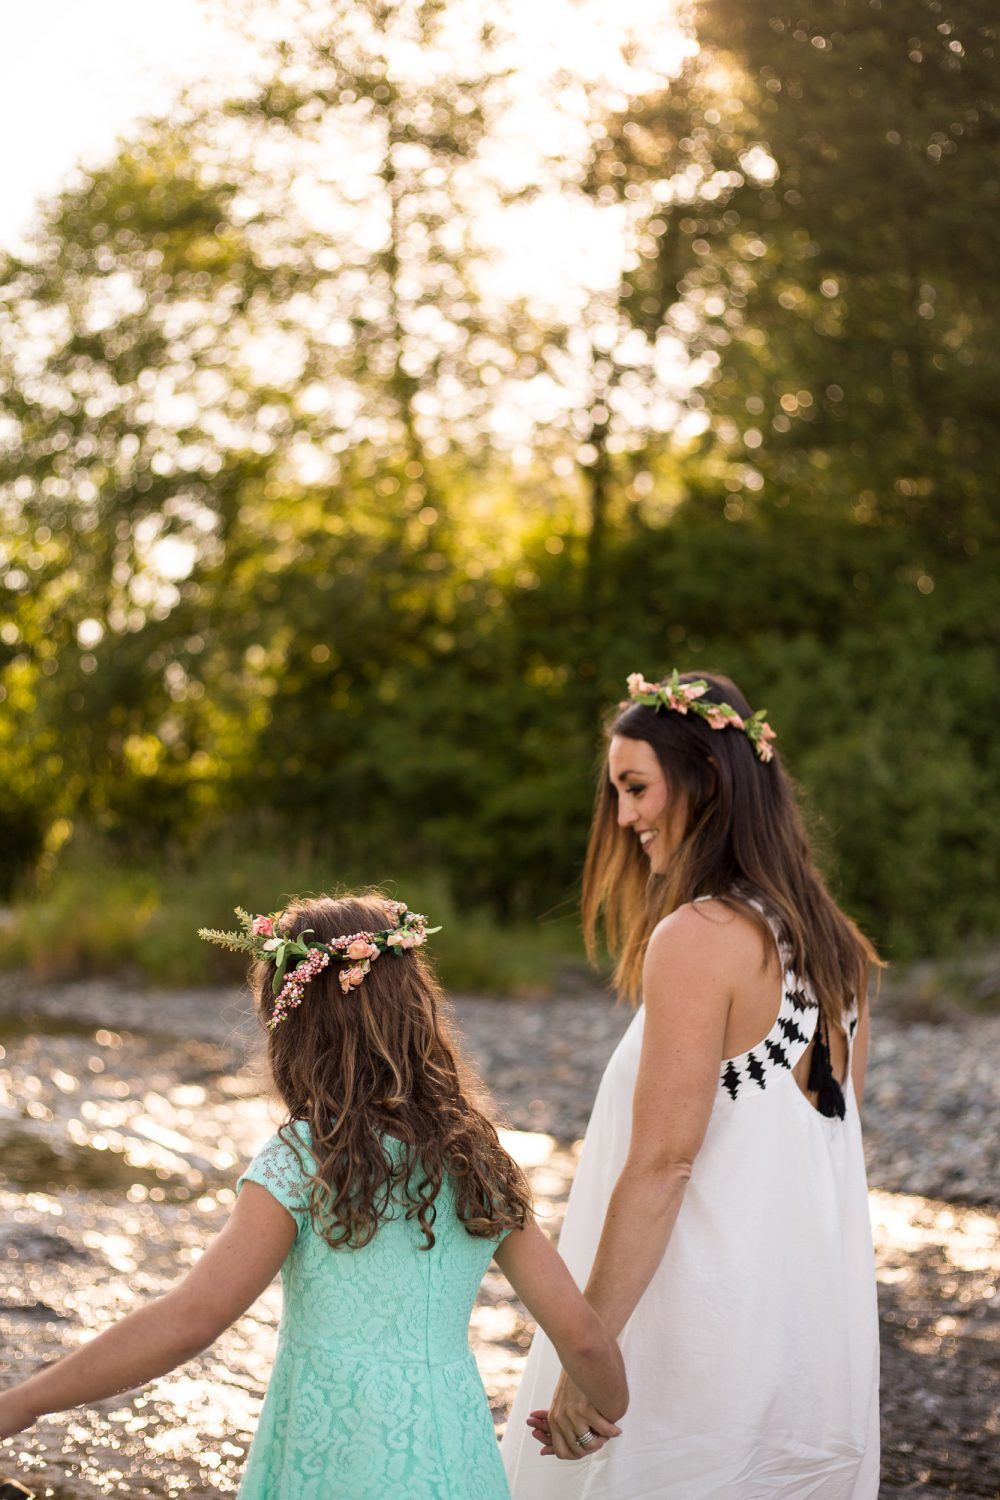 Diy flower crowns taryn whiteaker diy flower crowns izmirmasajfo